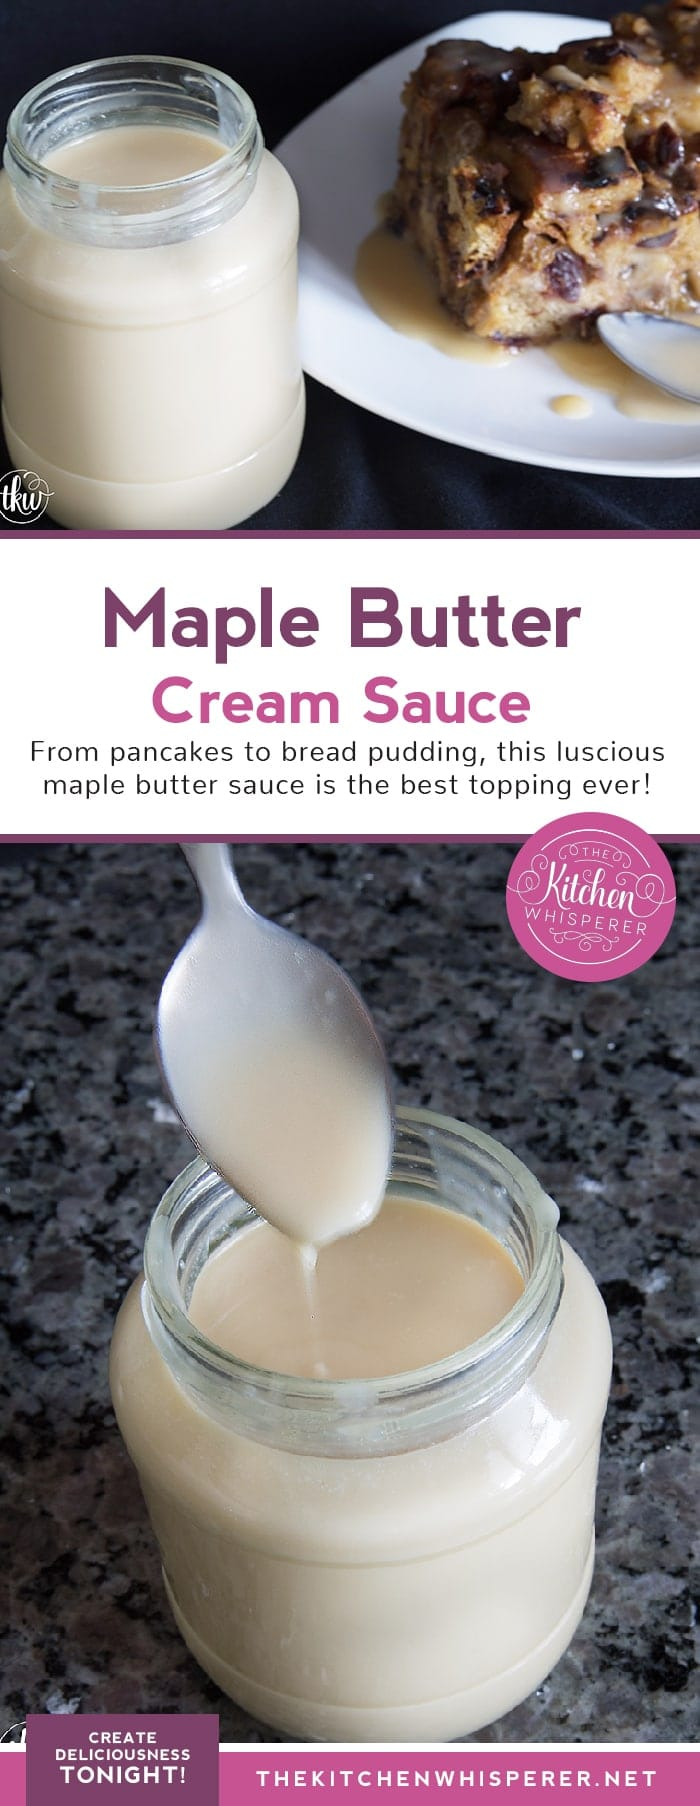 Seriously delicious Maple Butter Cream Sauce